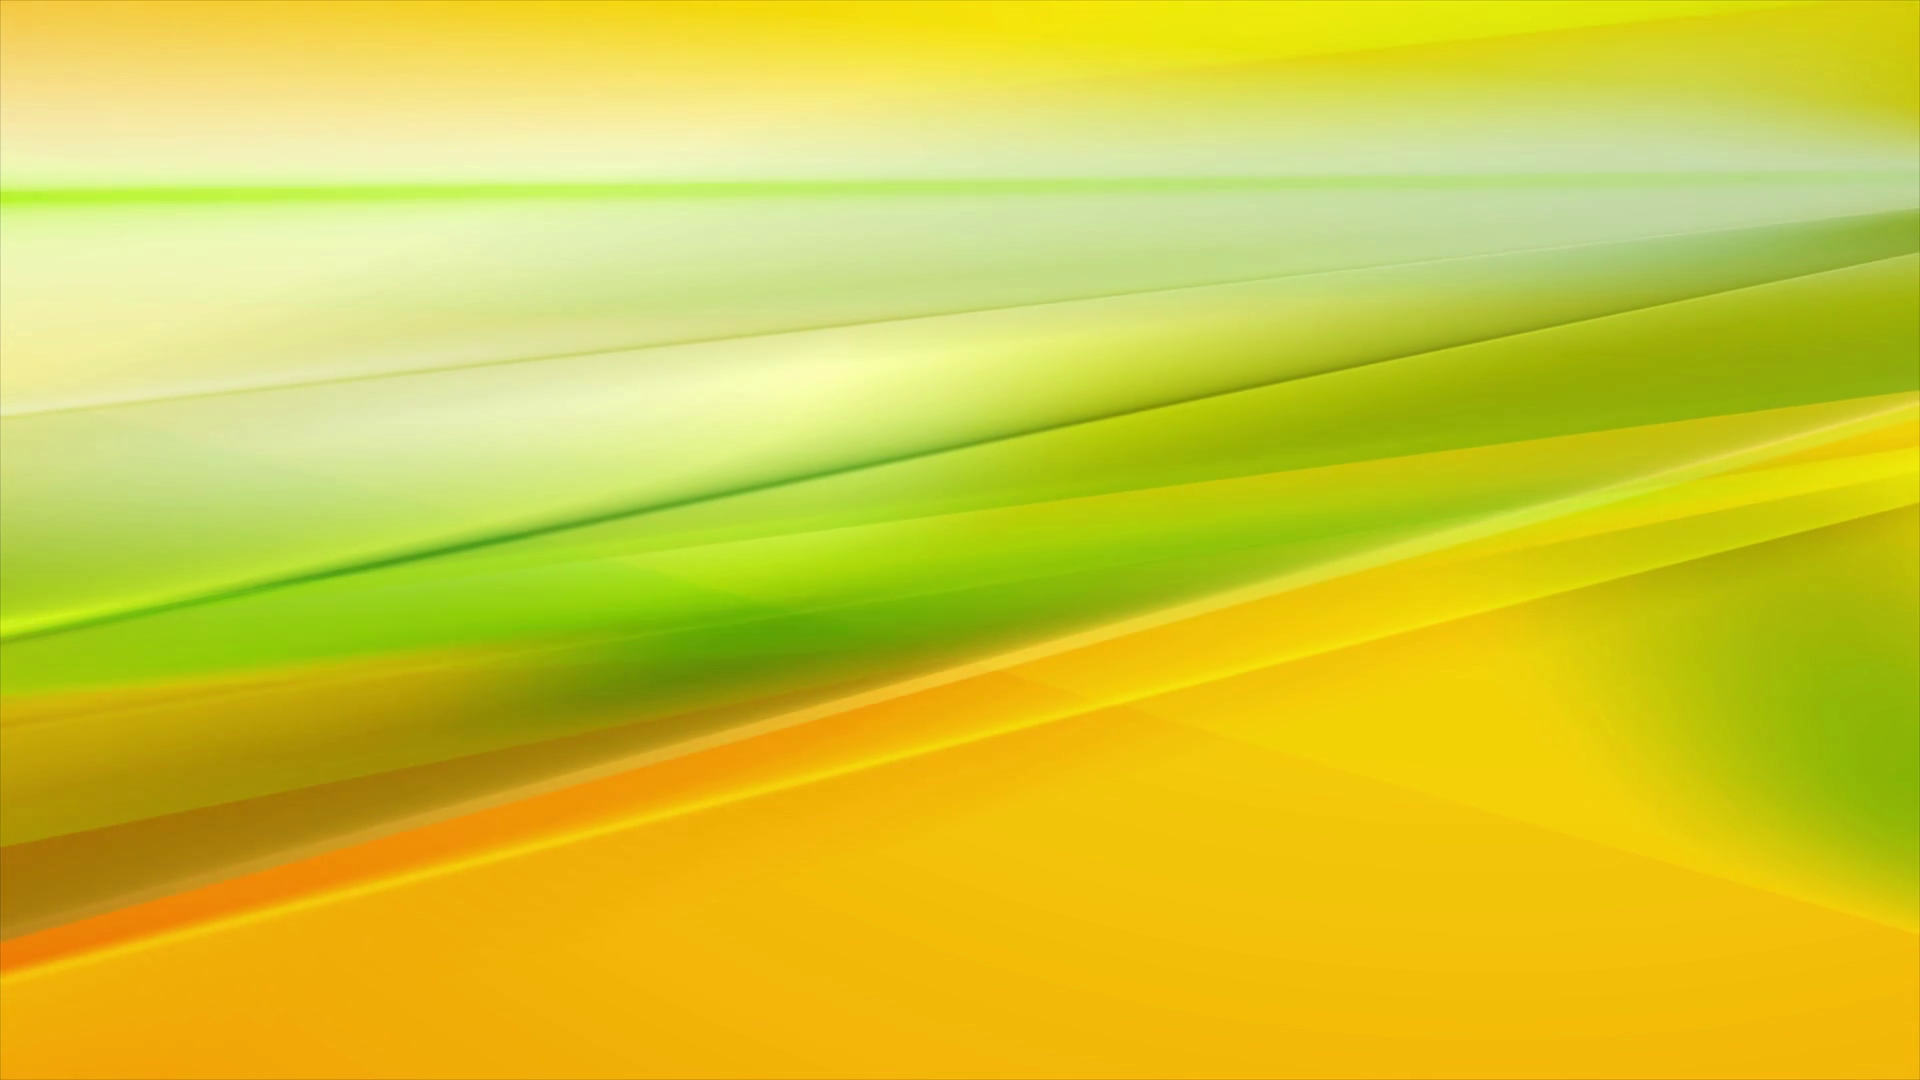 Green and orange abstract stripes motion background Video 1920x1080